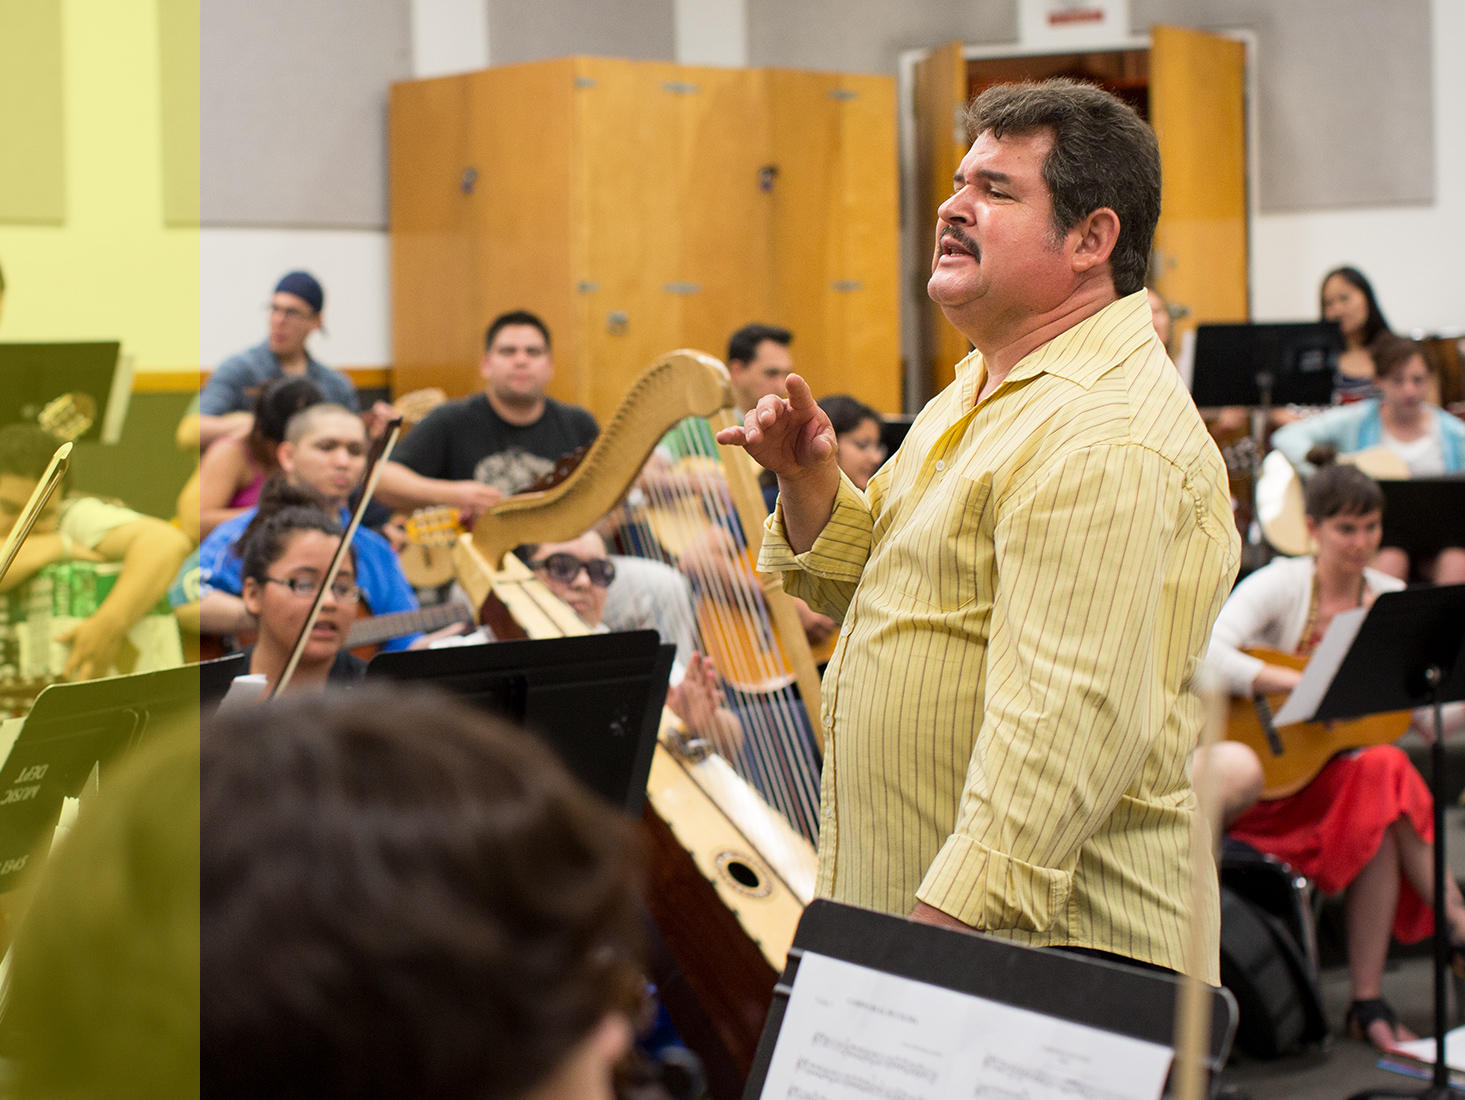 Arranger, director, instructor and musician Jesús Guzmán leads students in an orchestra.